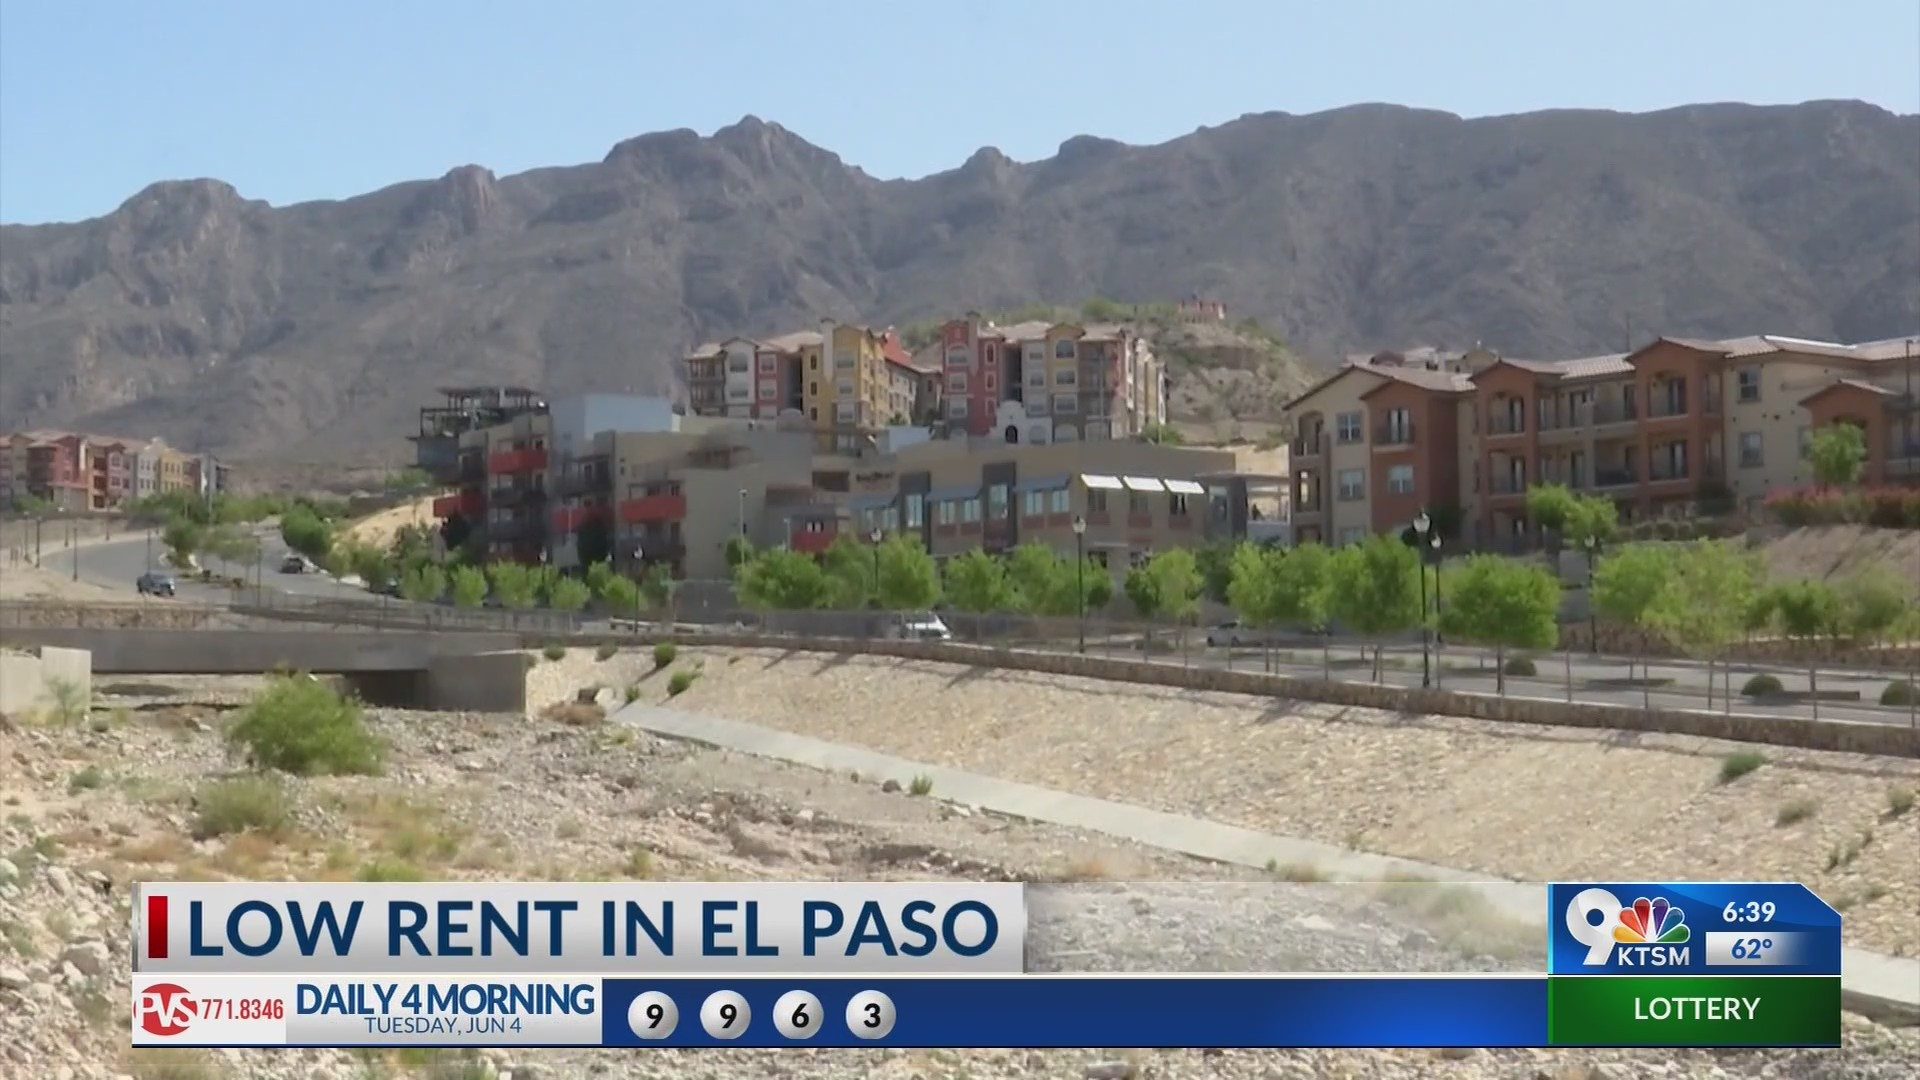 El Paso rent rates low compared to other cities